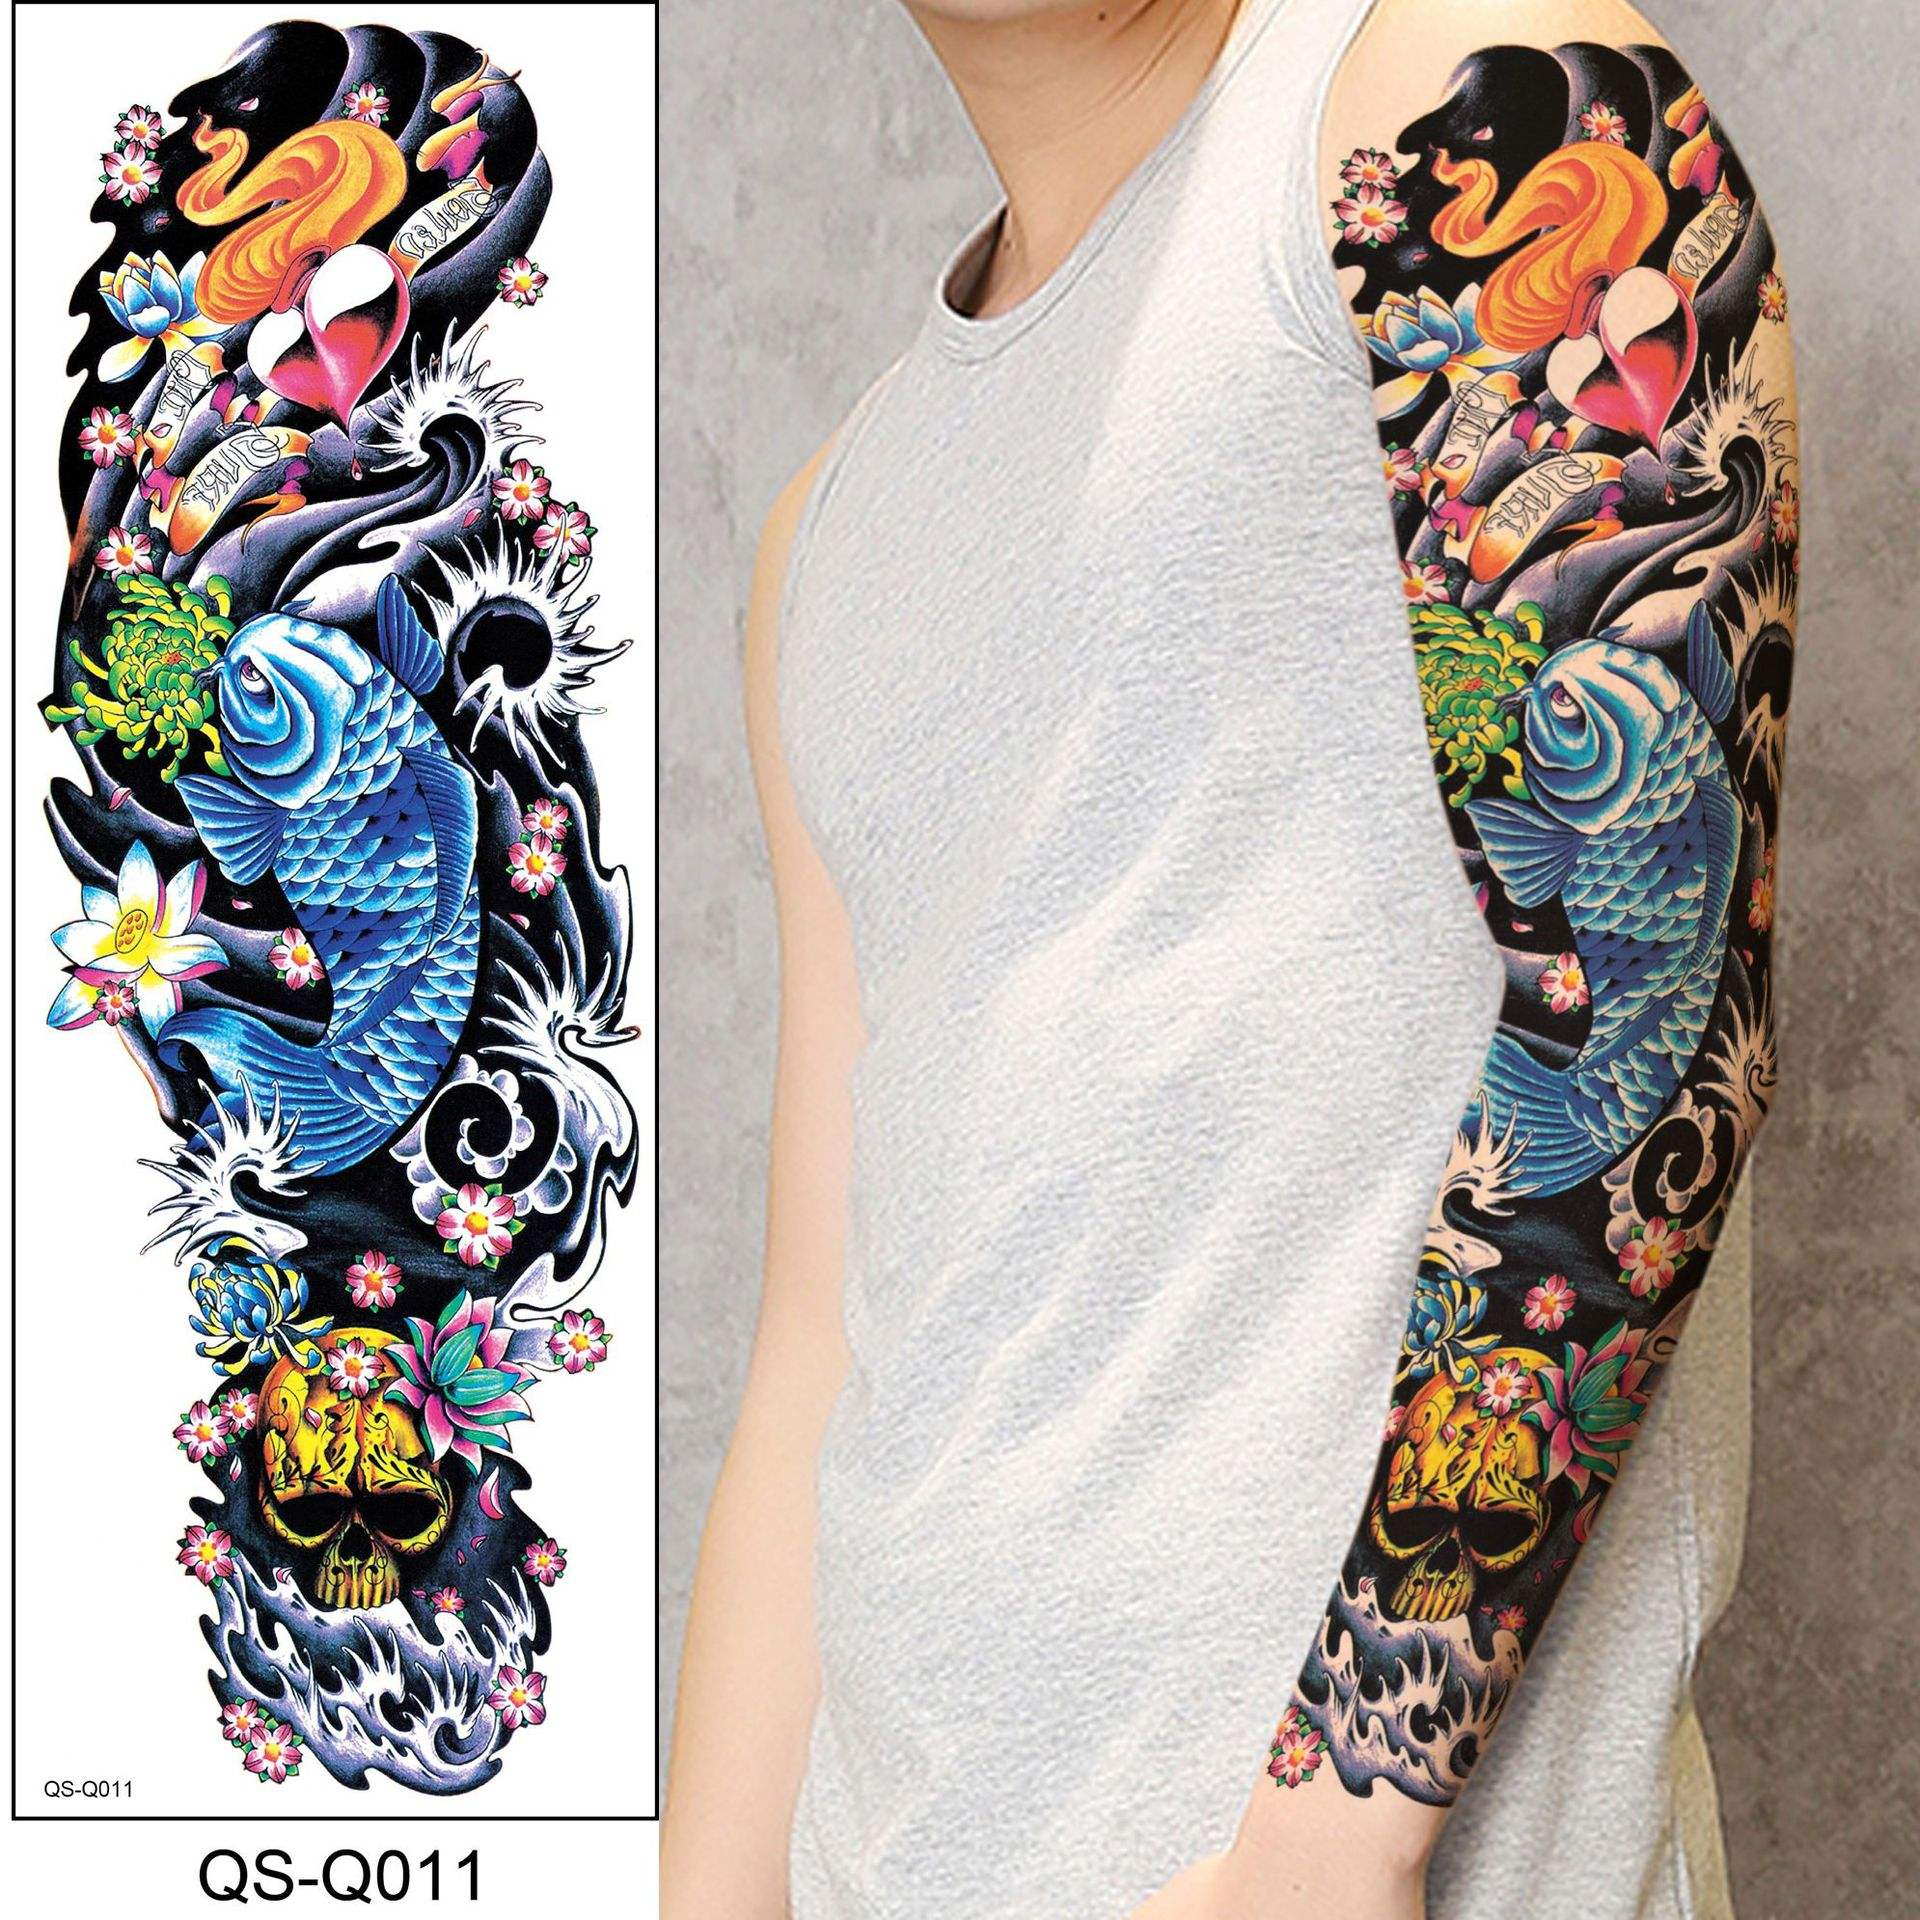 Waterproof Temporary Tatoo Full Arm Fake Tattoo Sticker Fish Rose Prajna Tattoo Tattoos Stickers Tatouage Art For Men Women Girl